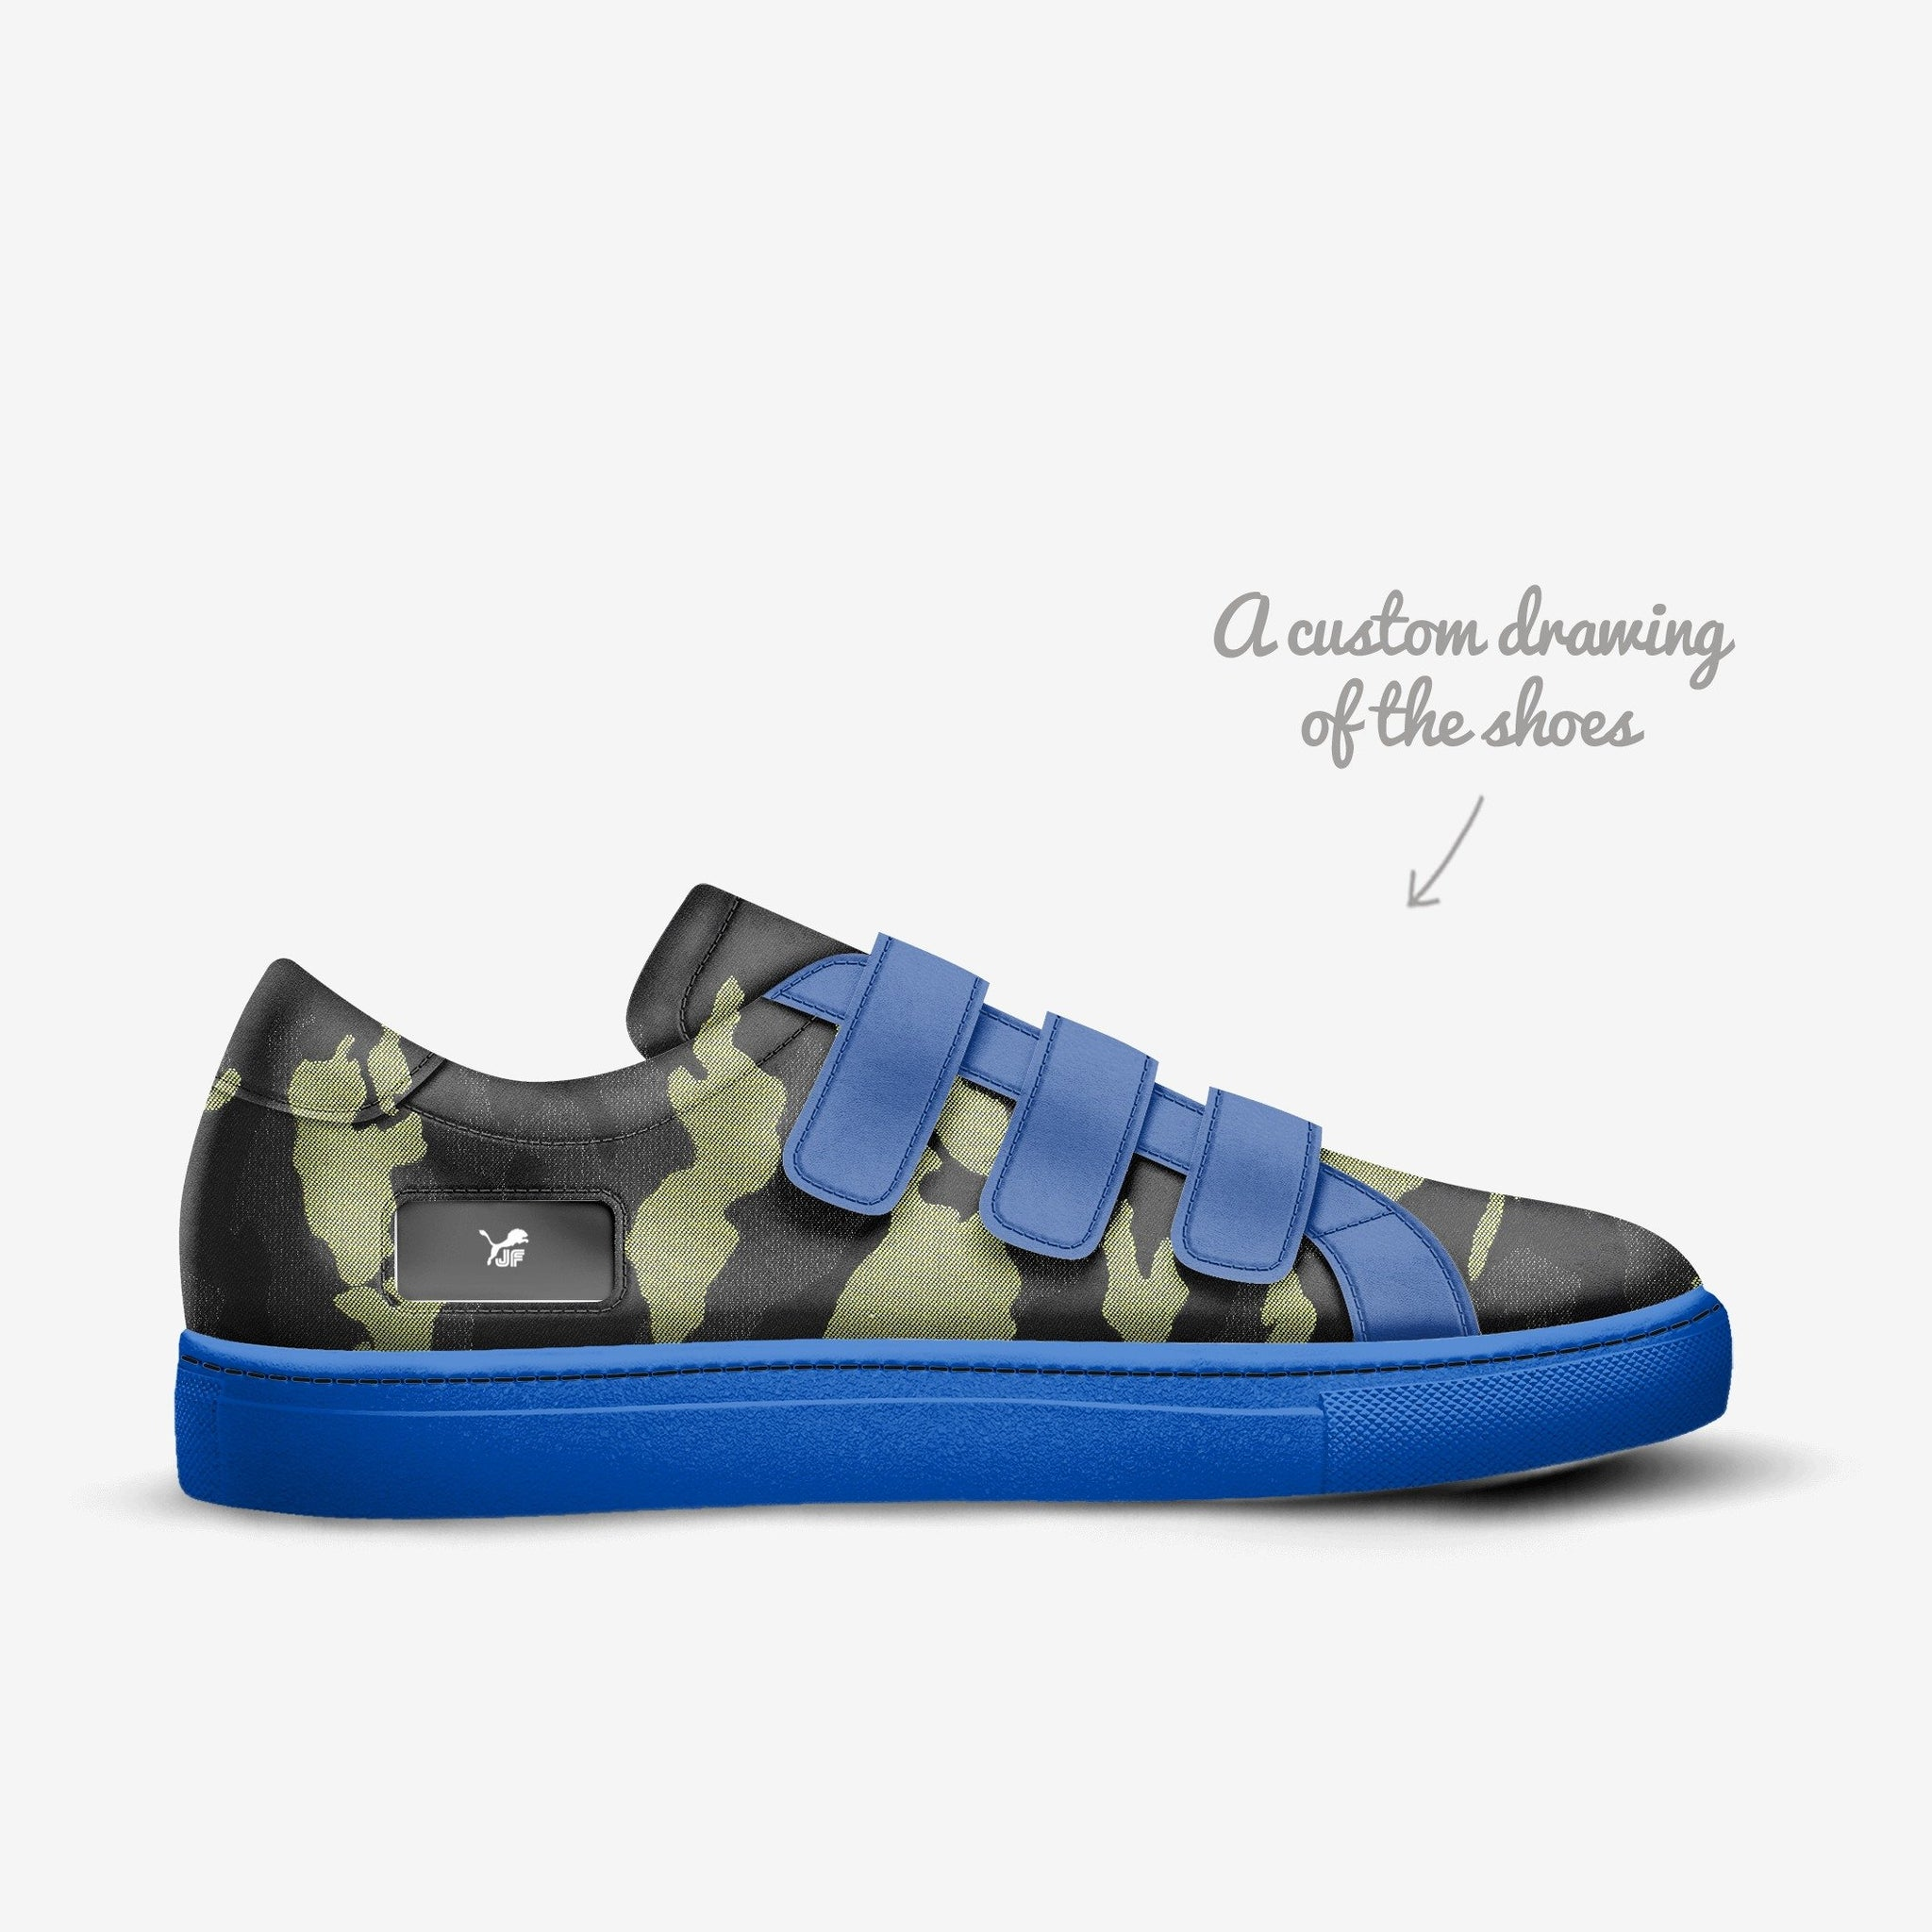 JF B813 (Soft Leather) Luxury Sneakers